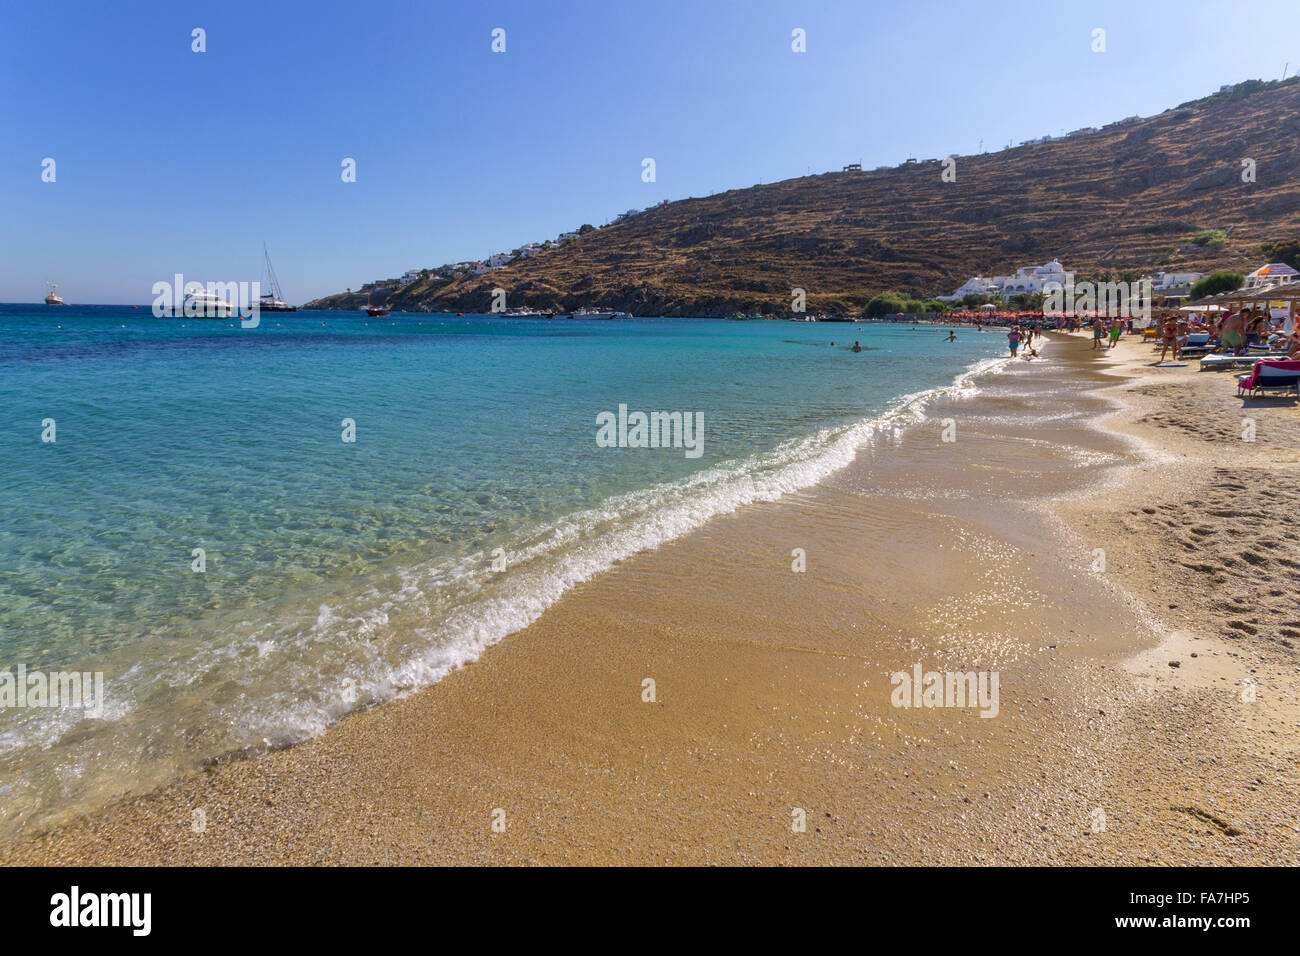 Best Island Beaches For Partying Mykonos St Barts: Psarou Mykonos Stock Photos & Psarou Mykonos Stock Images